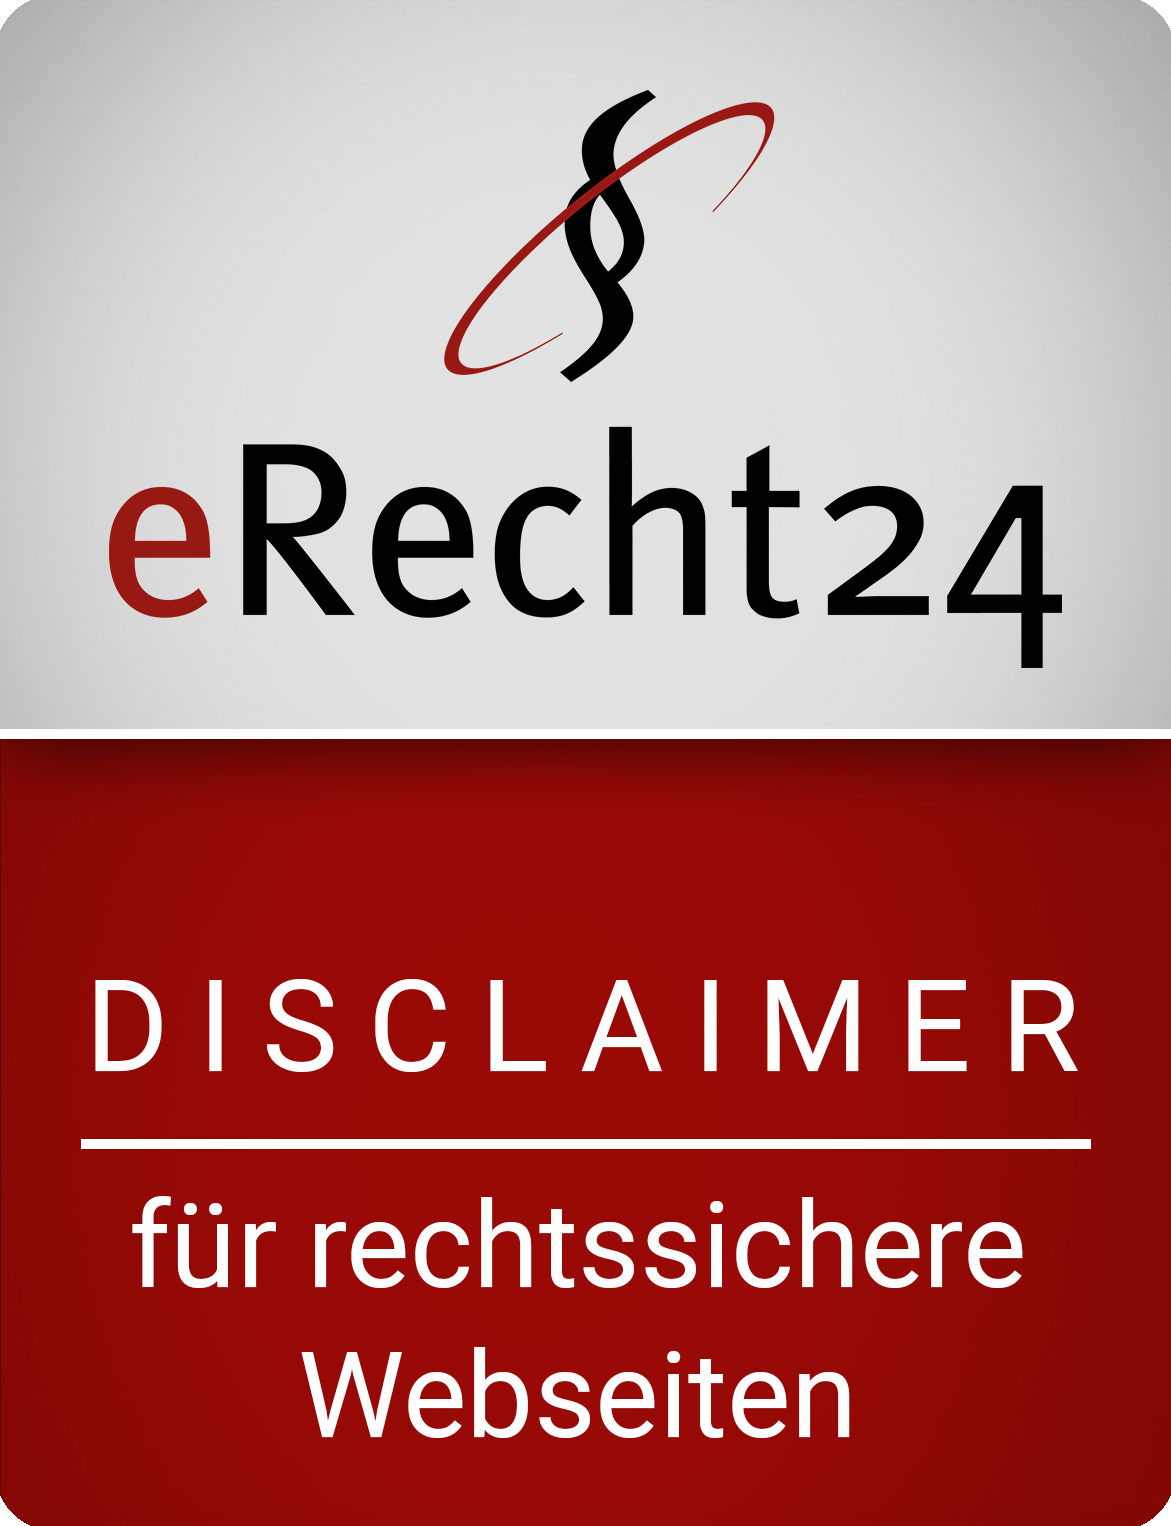 erecht24-siegel-disclaimer